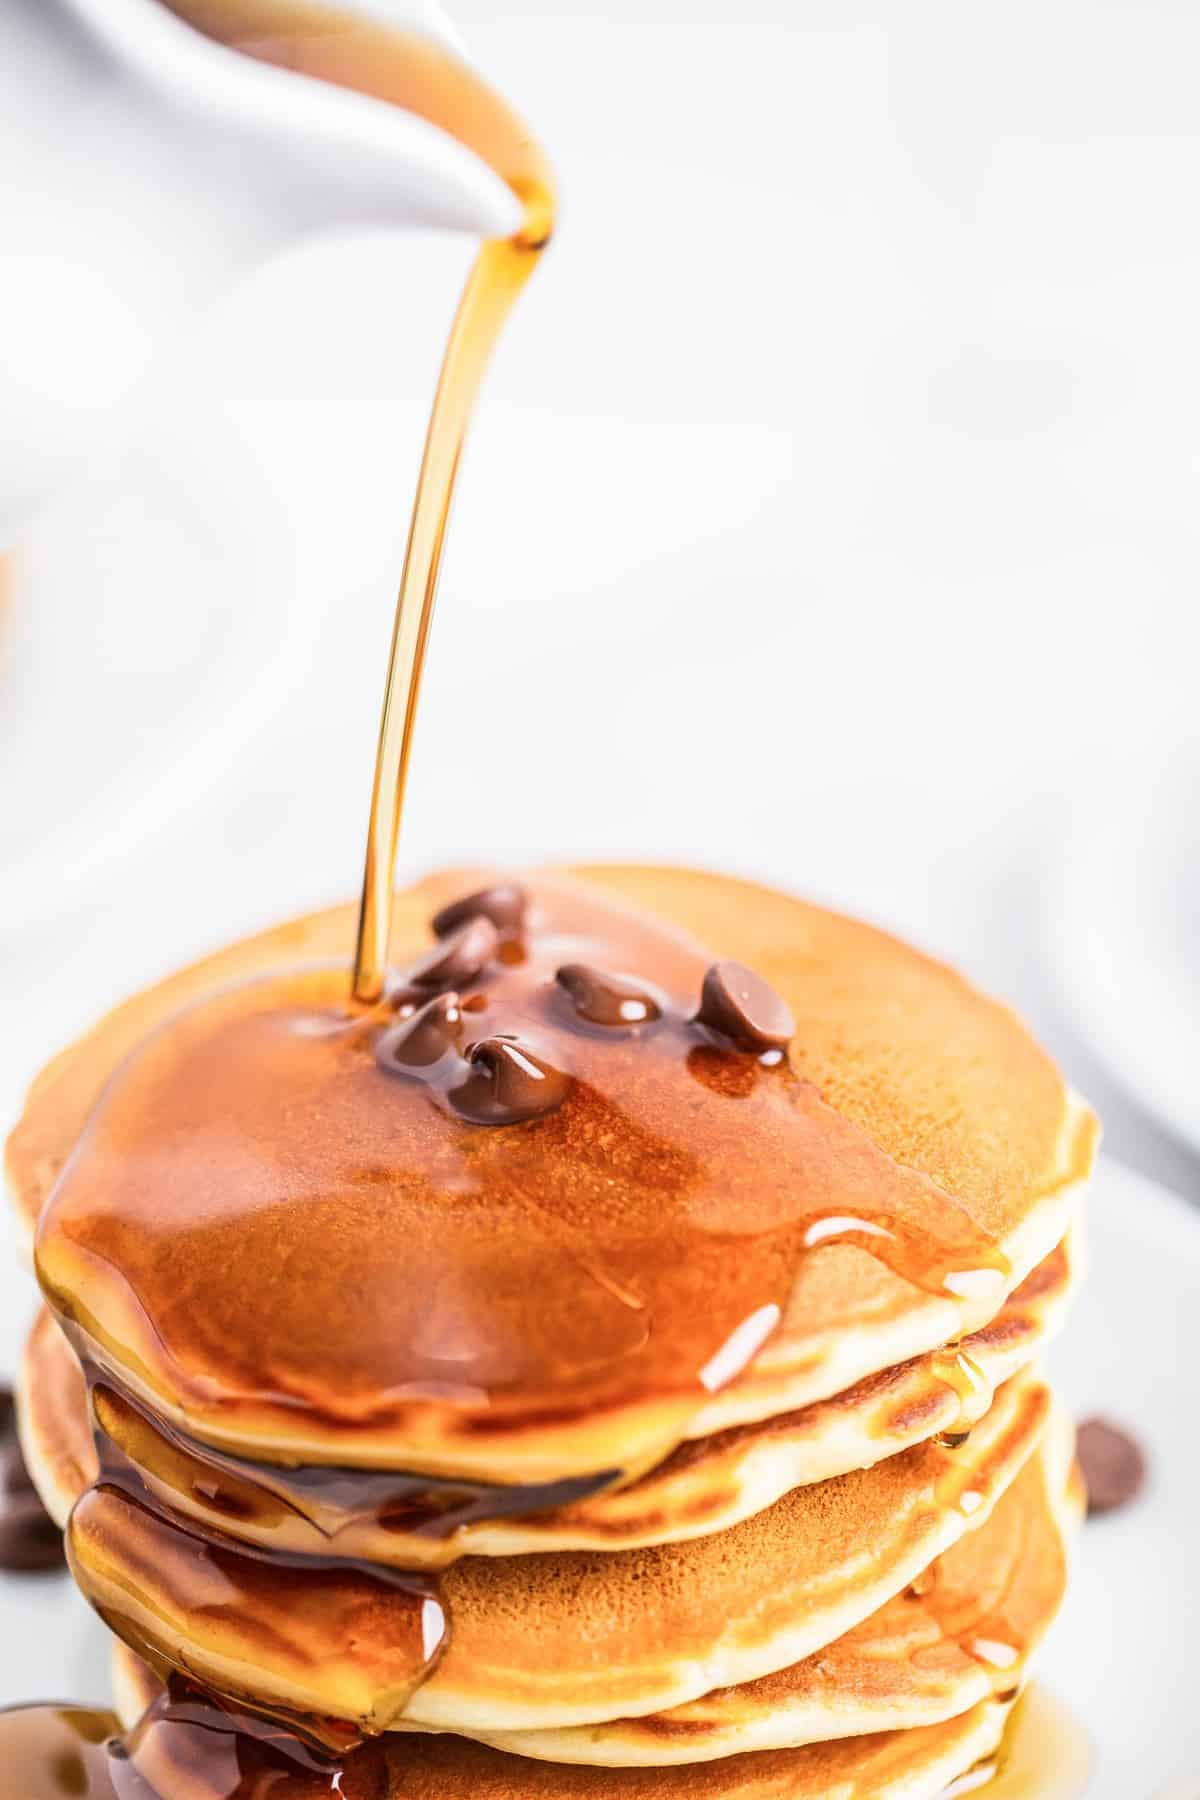 Close up of syrup being poured on pancakes.